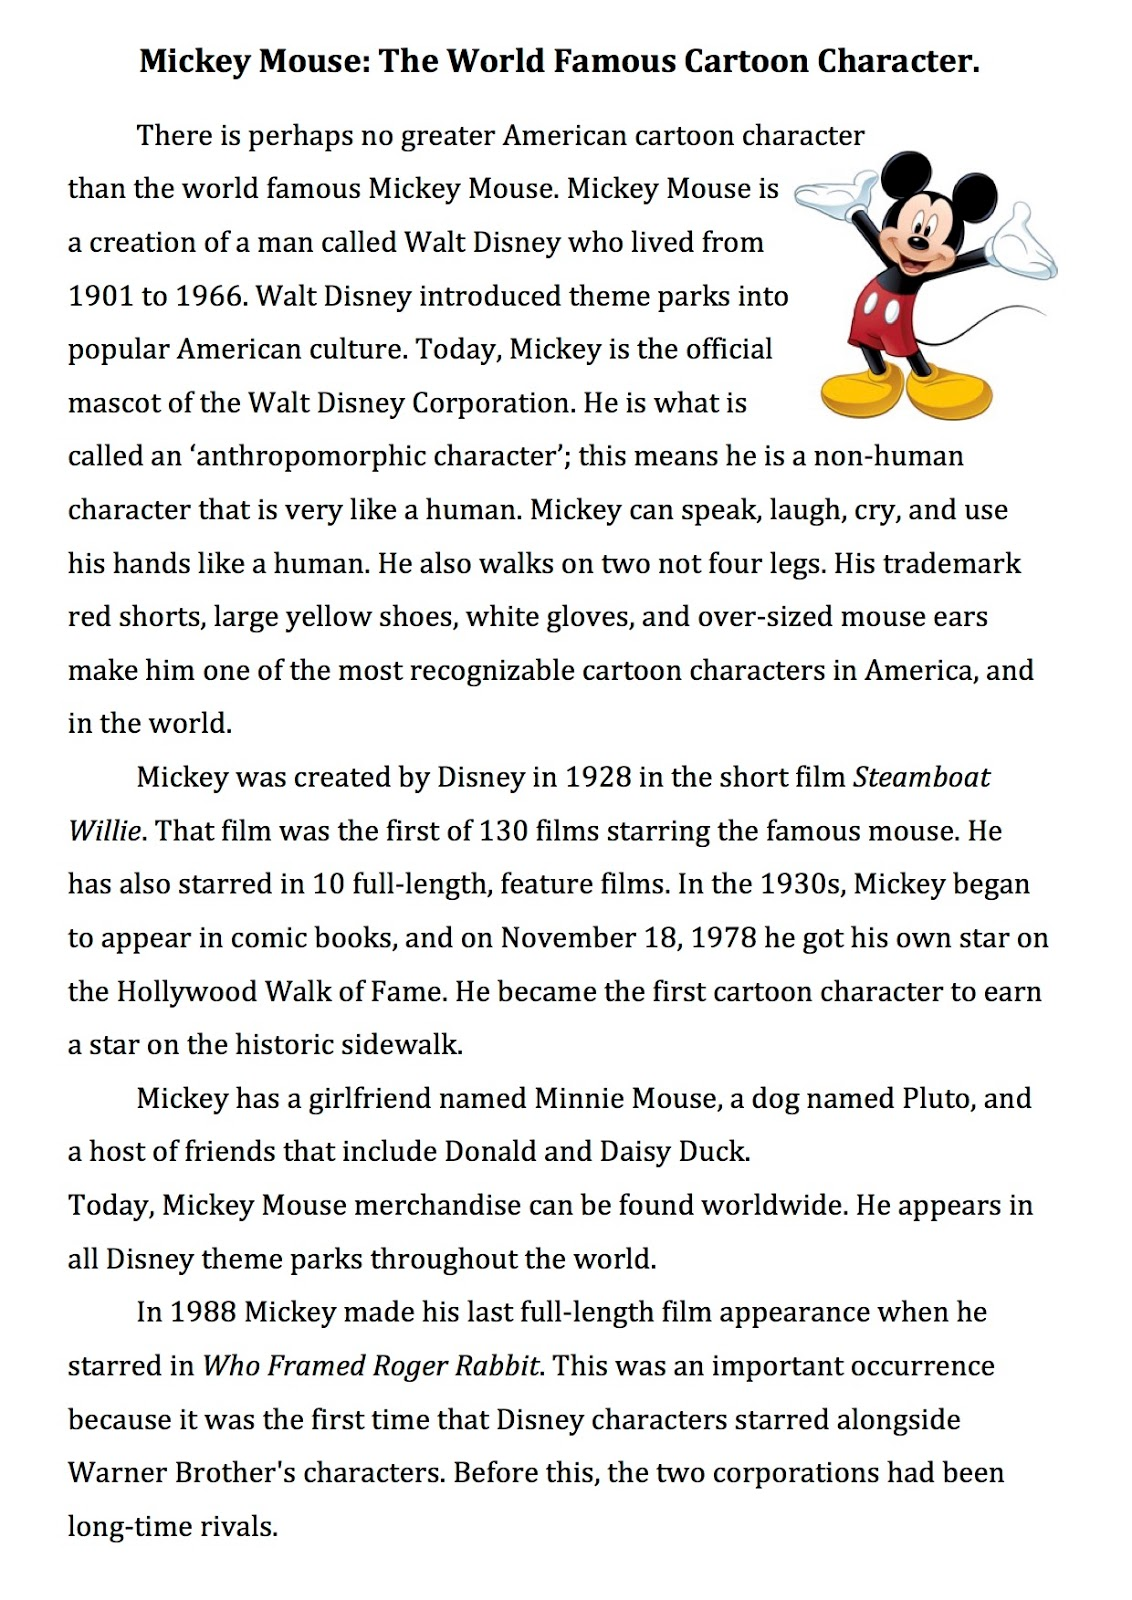 First Year English Reading 4 Mickey Mouse